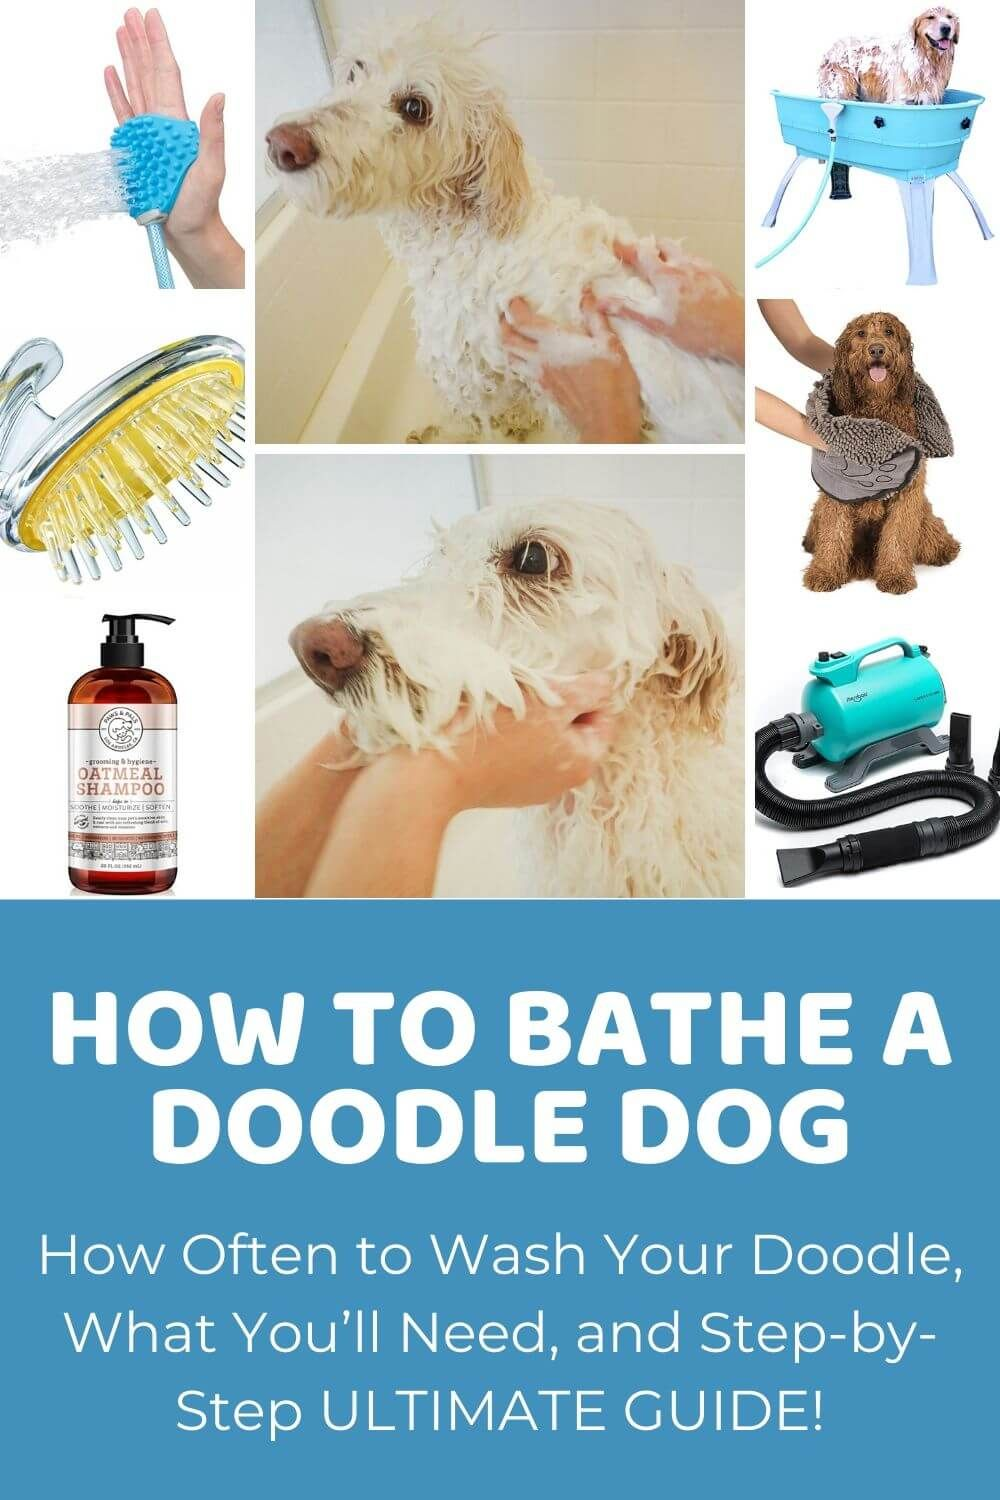 How to Bathe a Dog Ultimate Guide to Bathing Doodles in